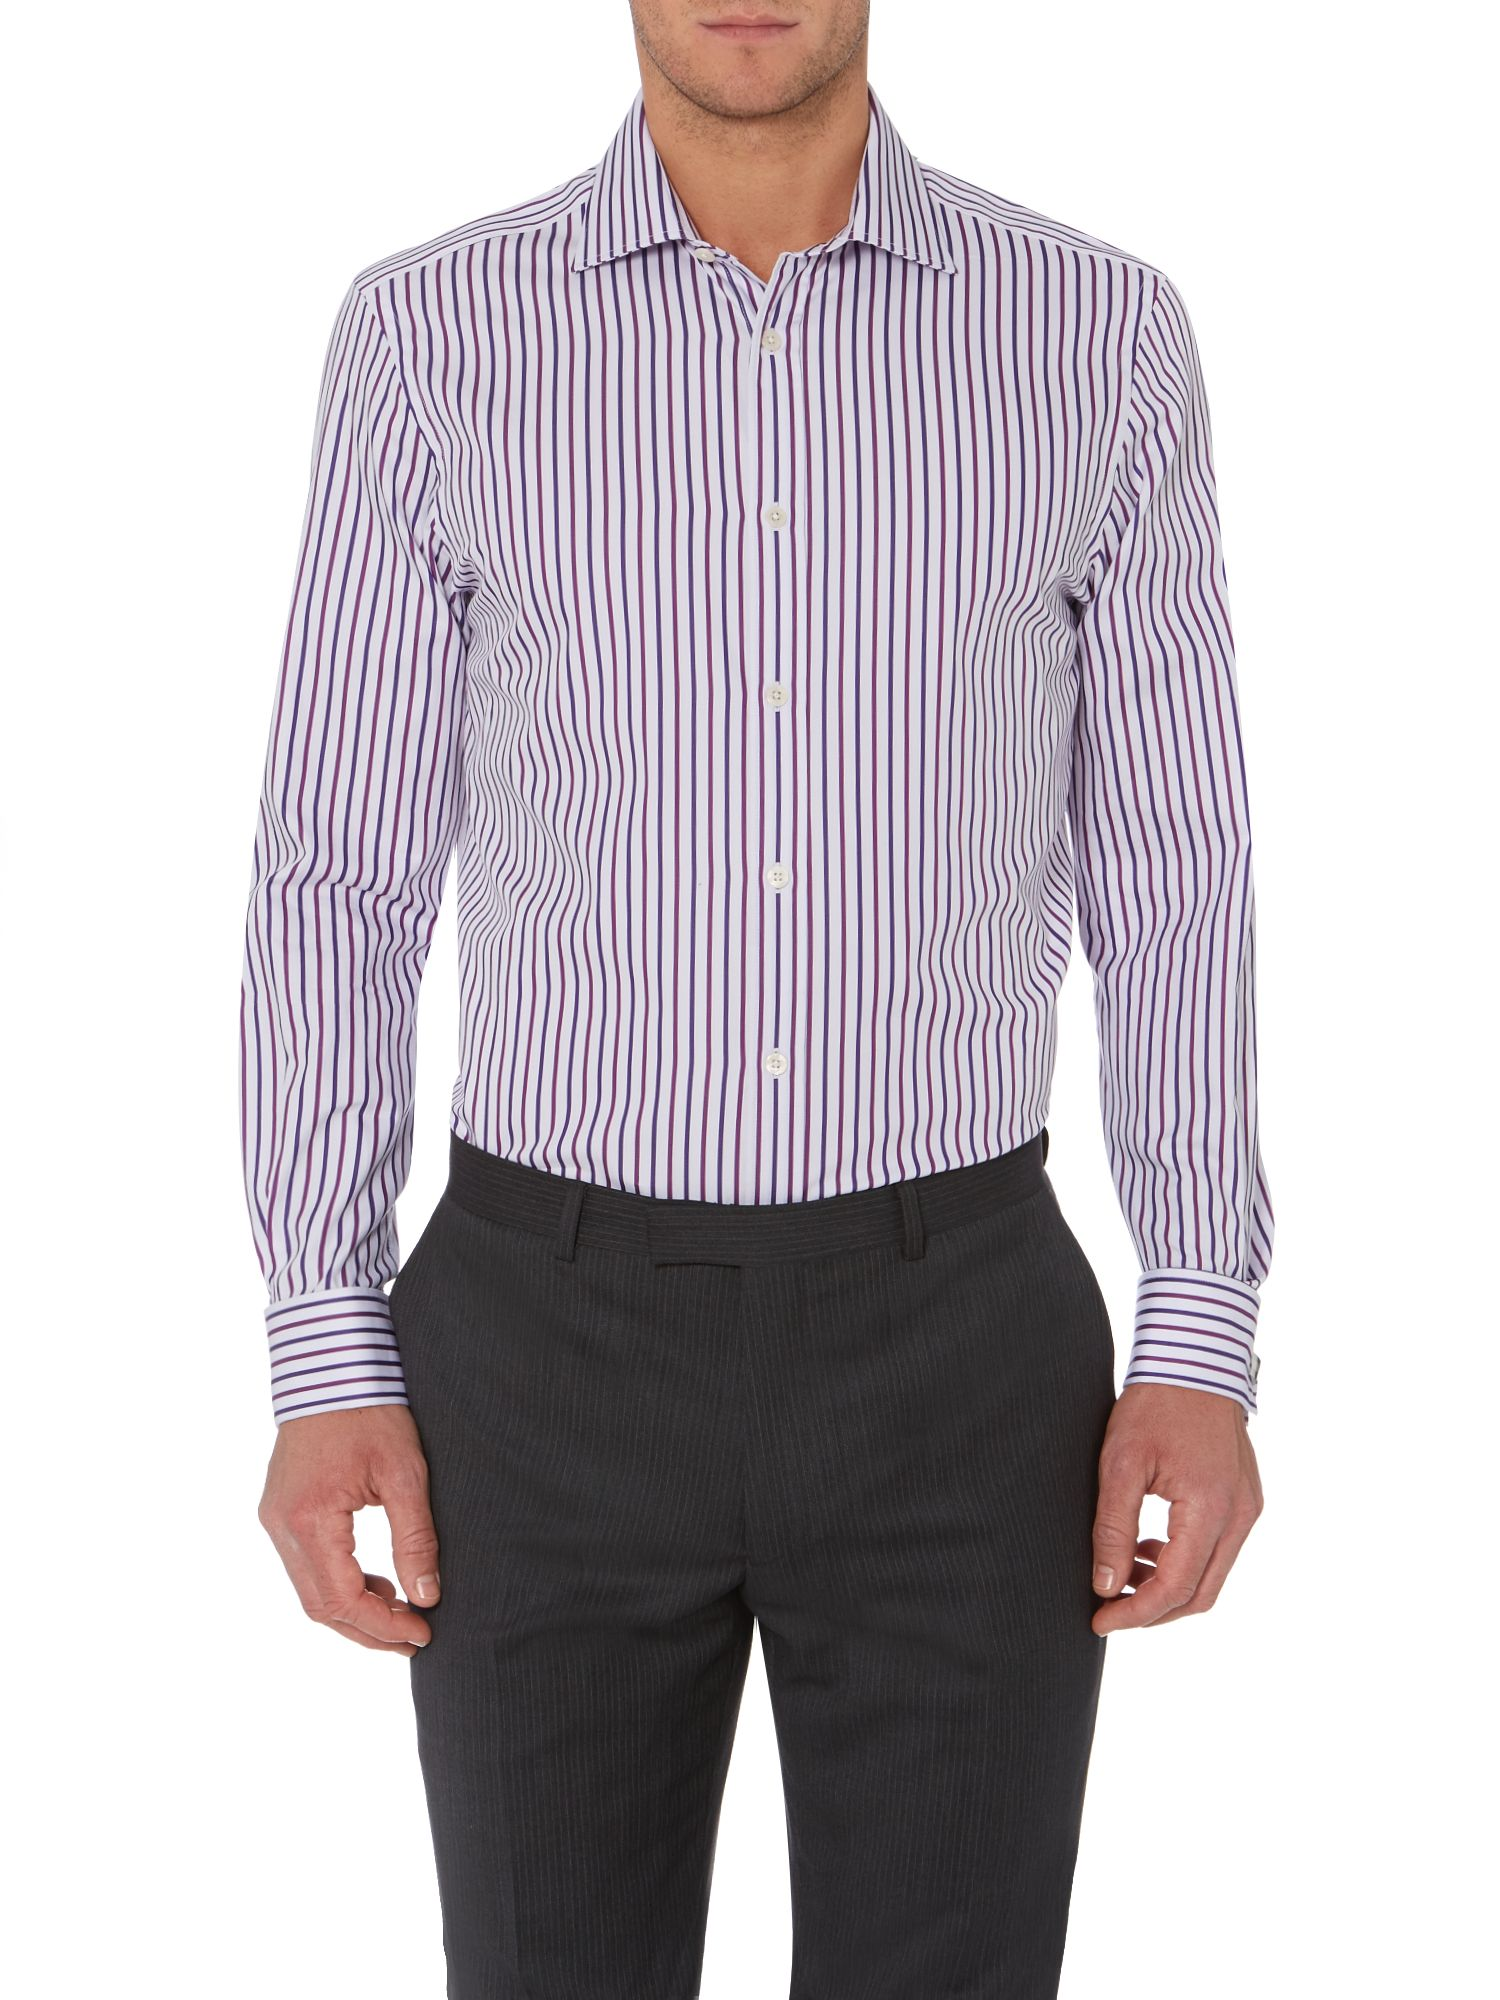 Yawkley satin stripe double cuff cutaway shirt